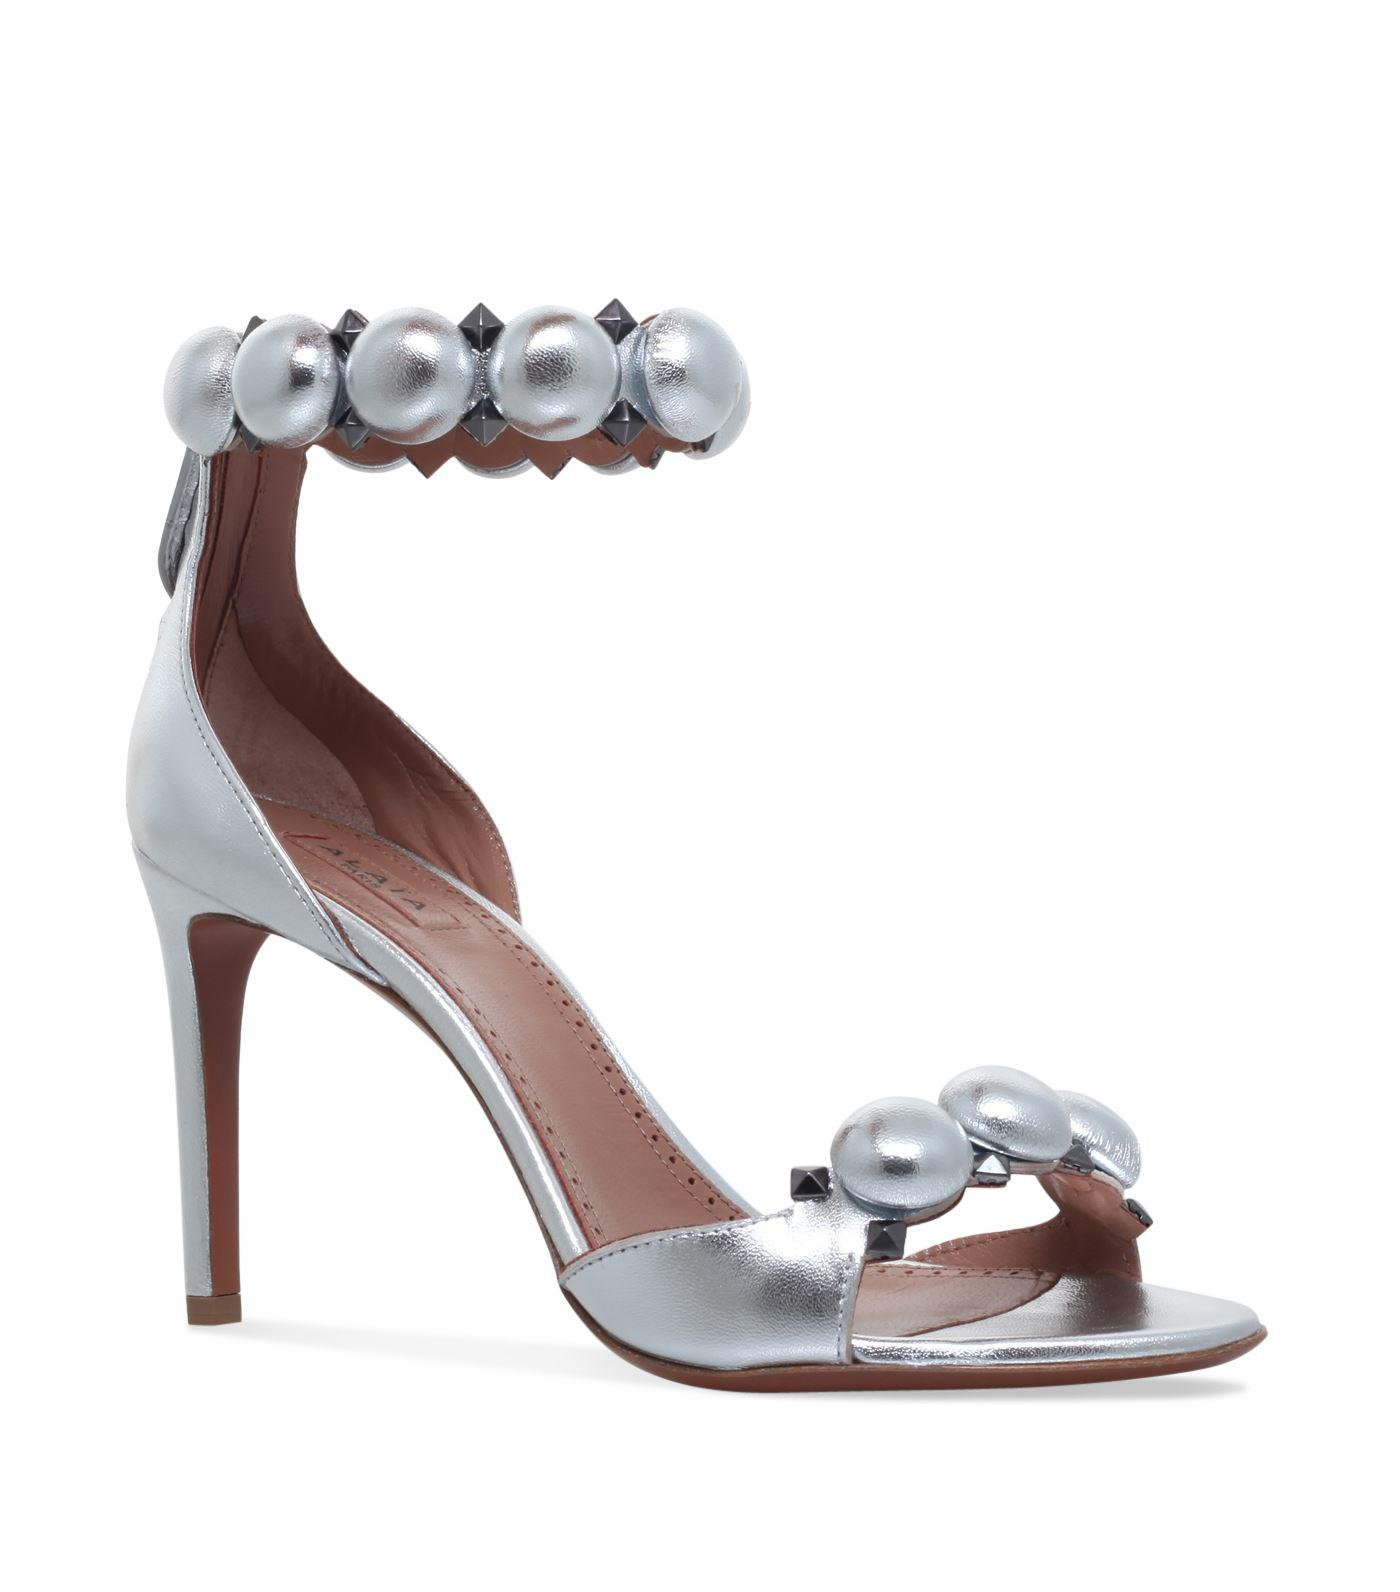 fde4394c48fe Lyst - Alaïa Leather Bombe Sandals 90 in Metallic